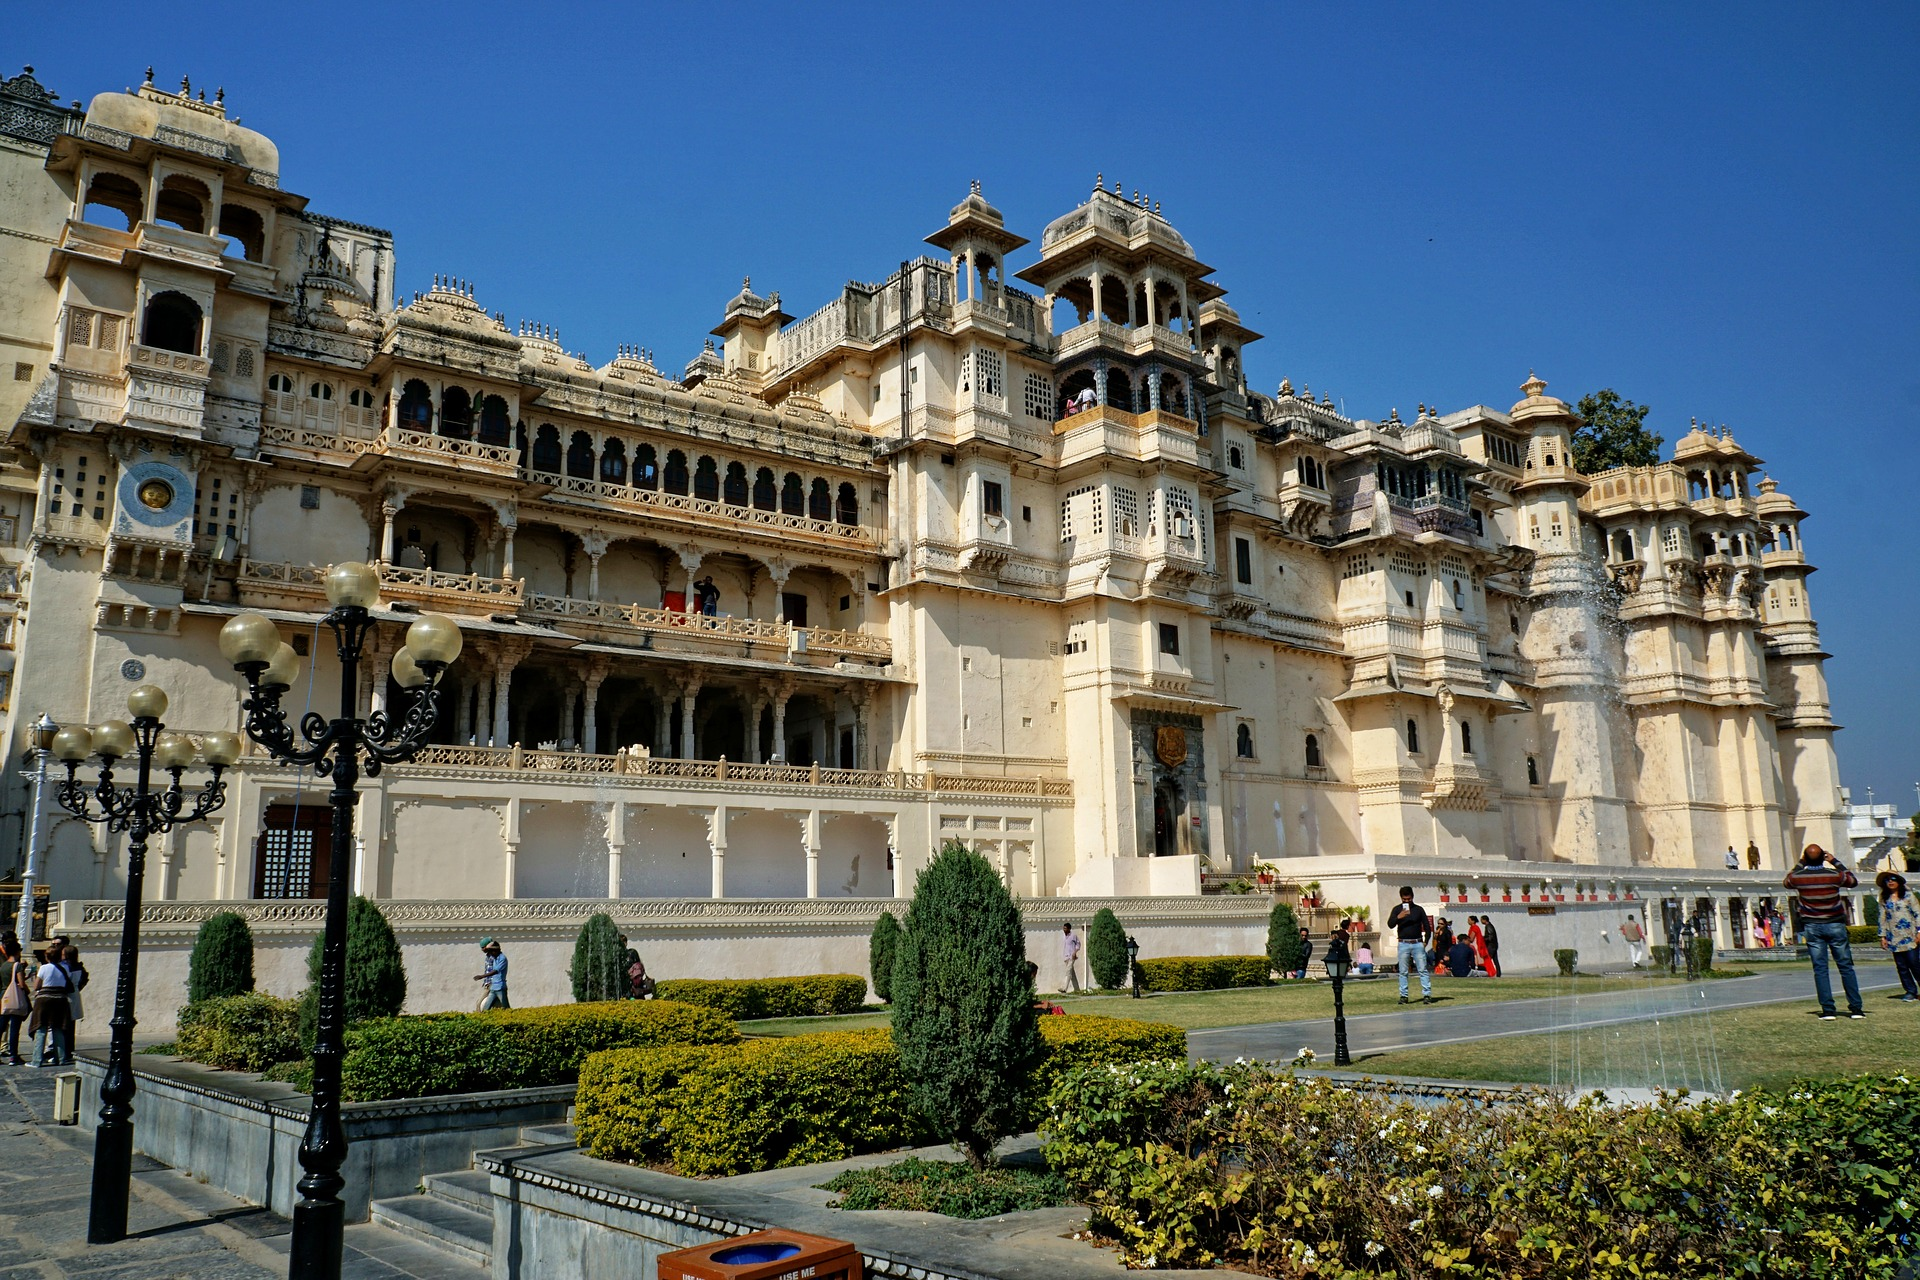 Highlights of Northern India - City palace and museum, Udaipur, India